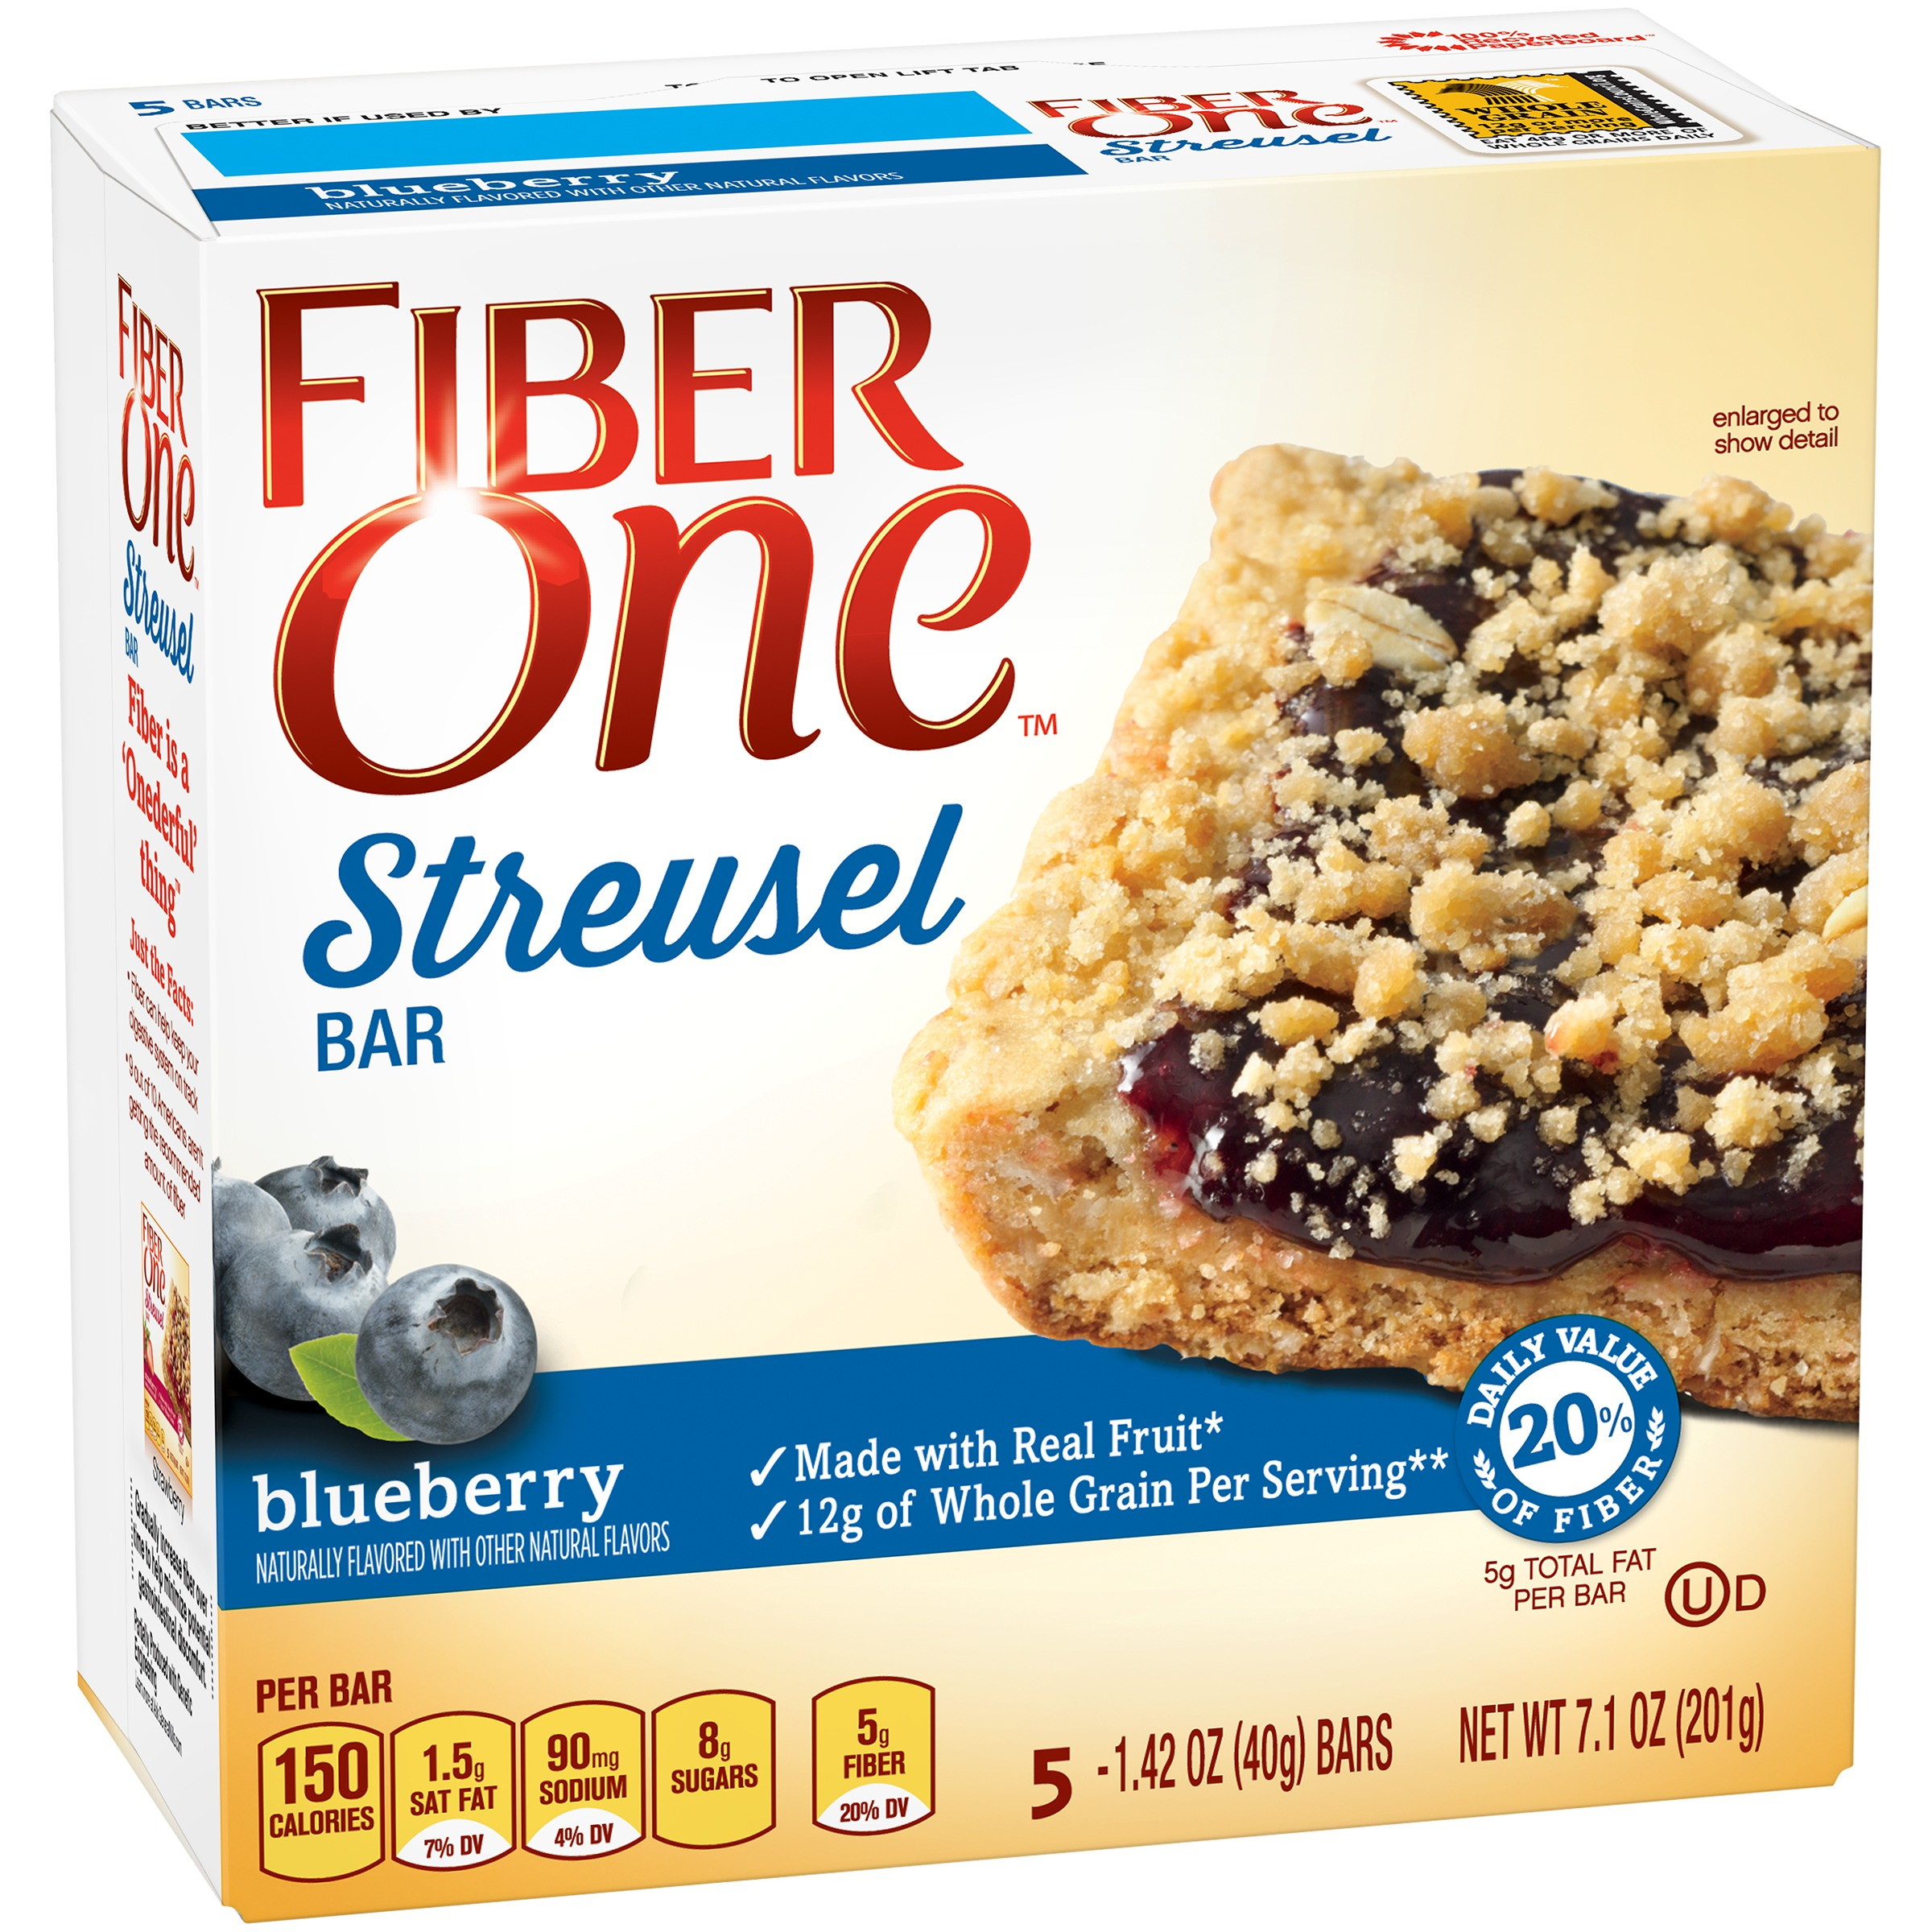 Fiber One Streusel Bar Blueberry 5 - 1.42 oz Bars